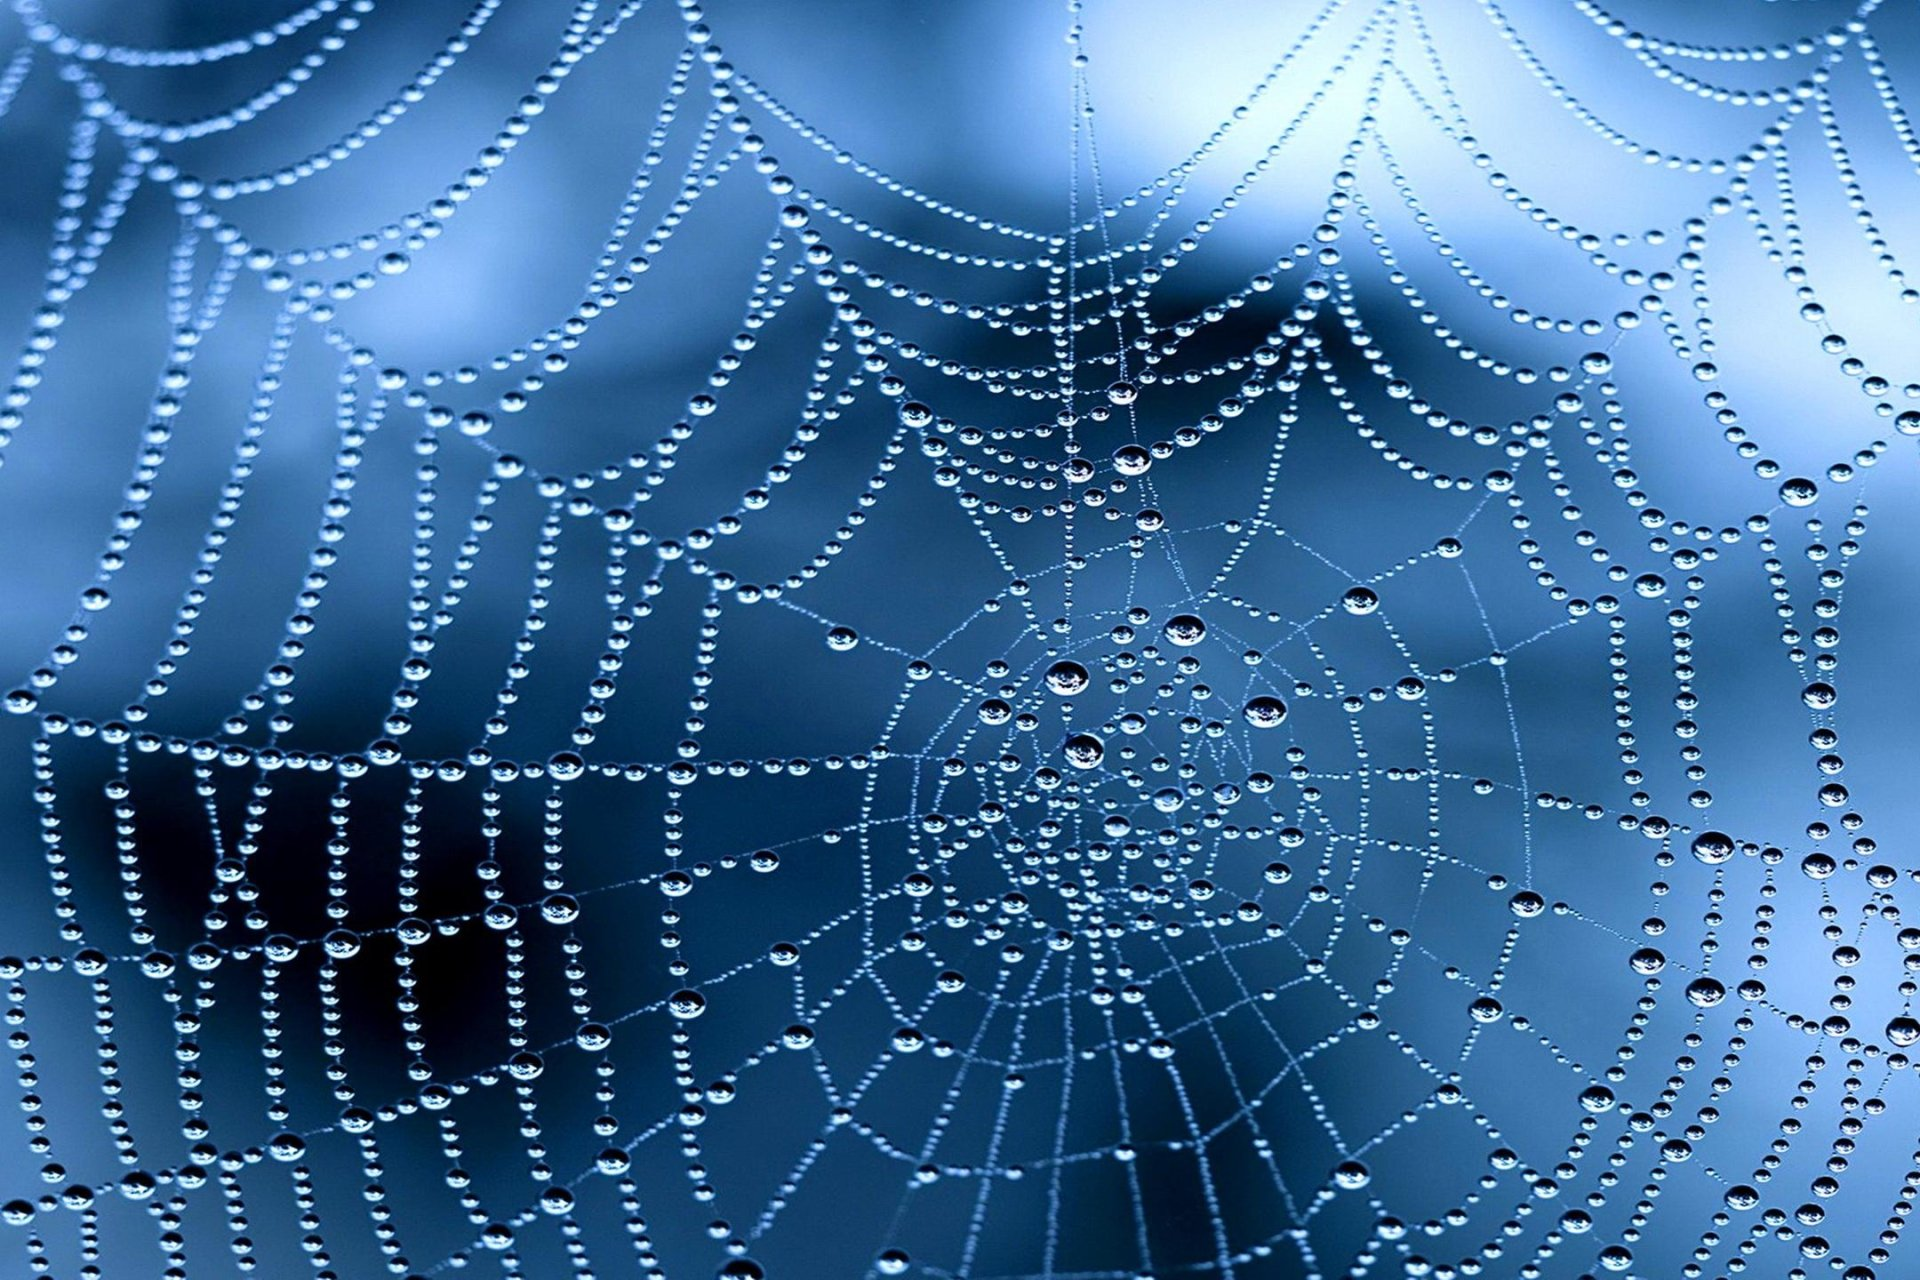 Morning Dew on Spider Web HD Wallpaper | Background Image ...